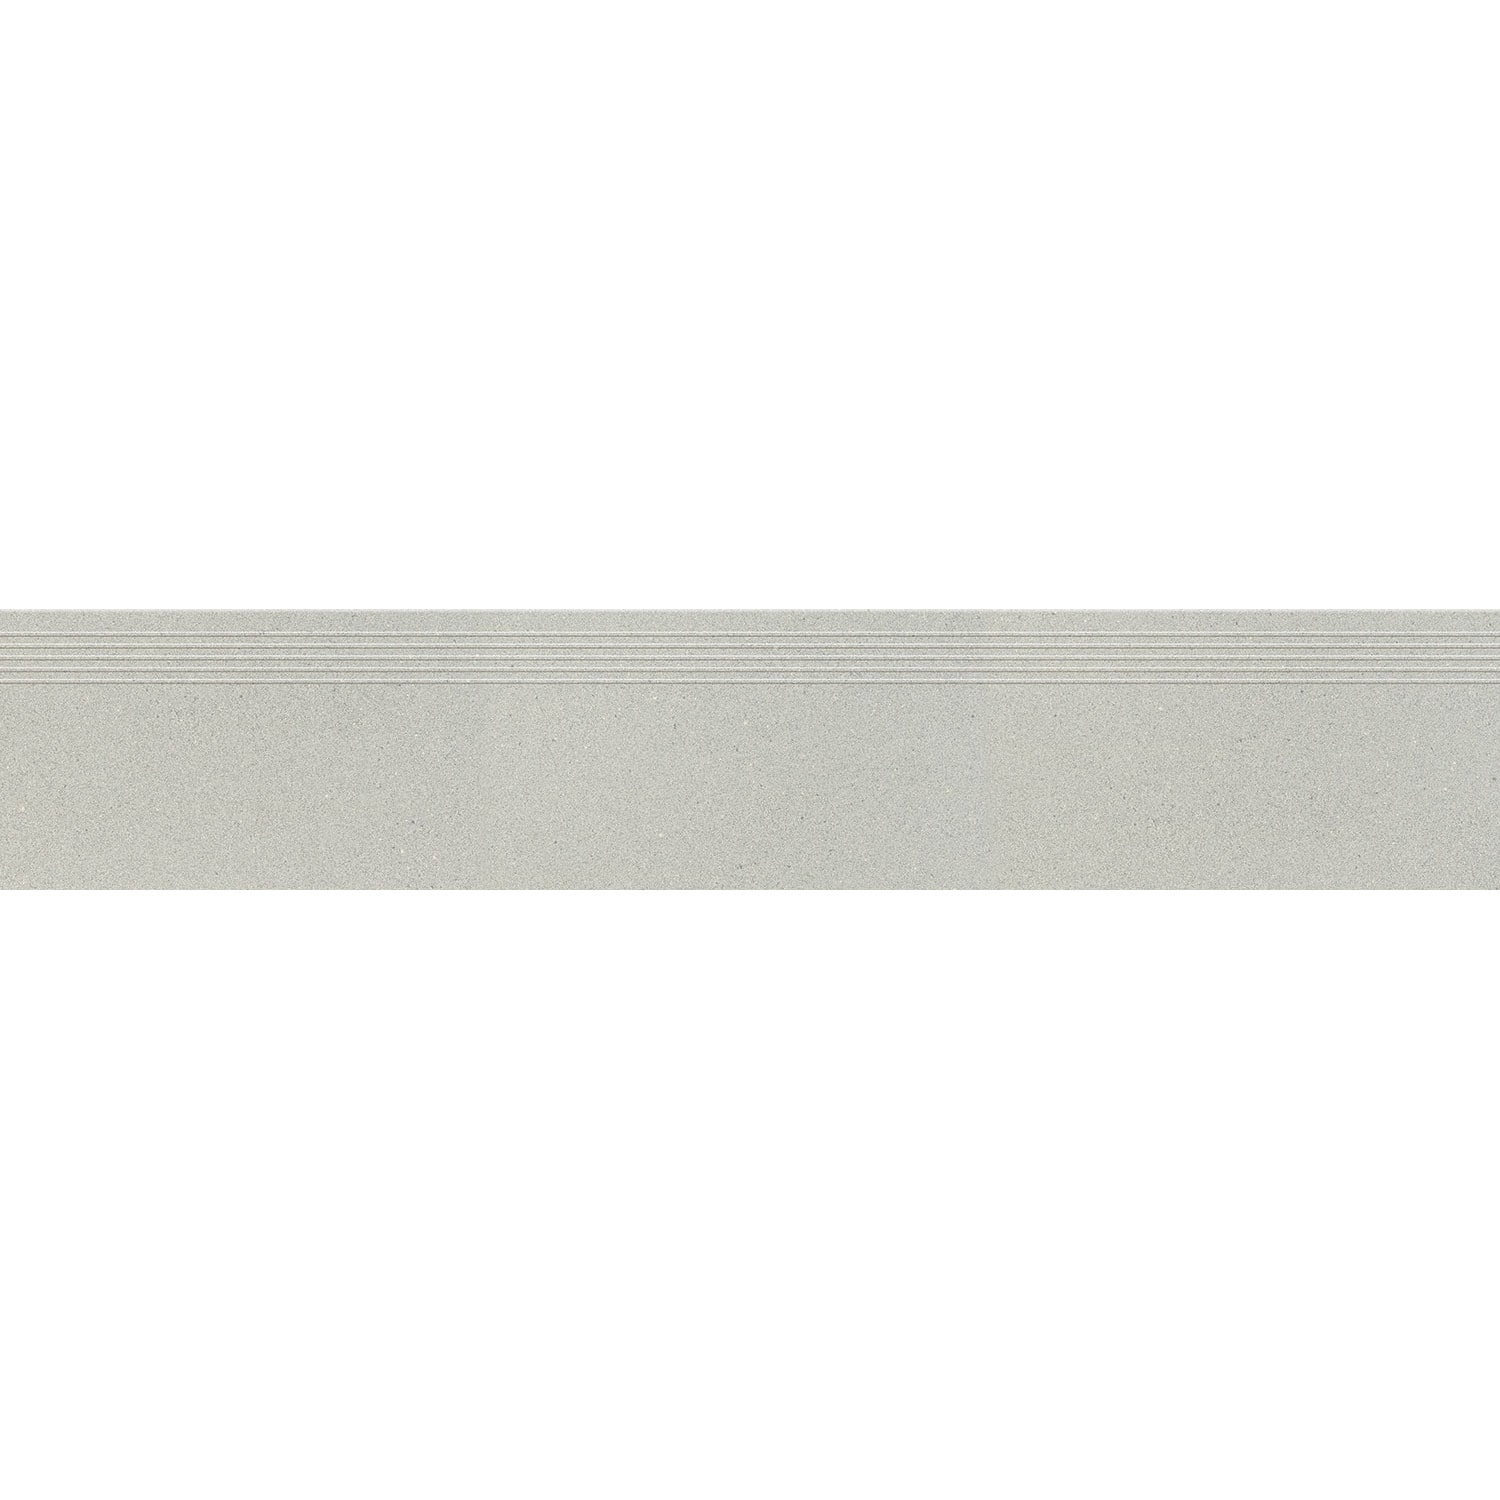 Stopnica podłogowa Tubądzin Urban Space light grey 119,8x29,6 cm